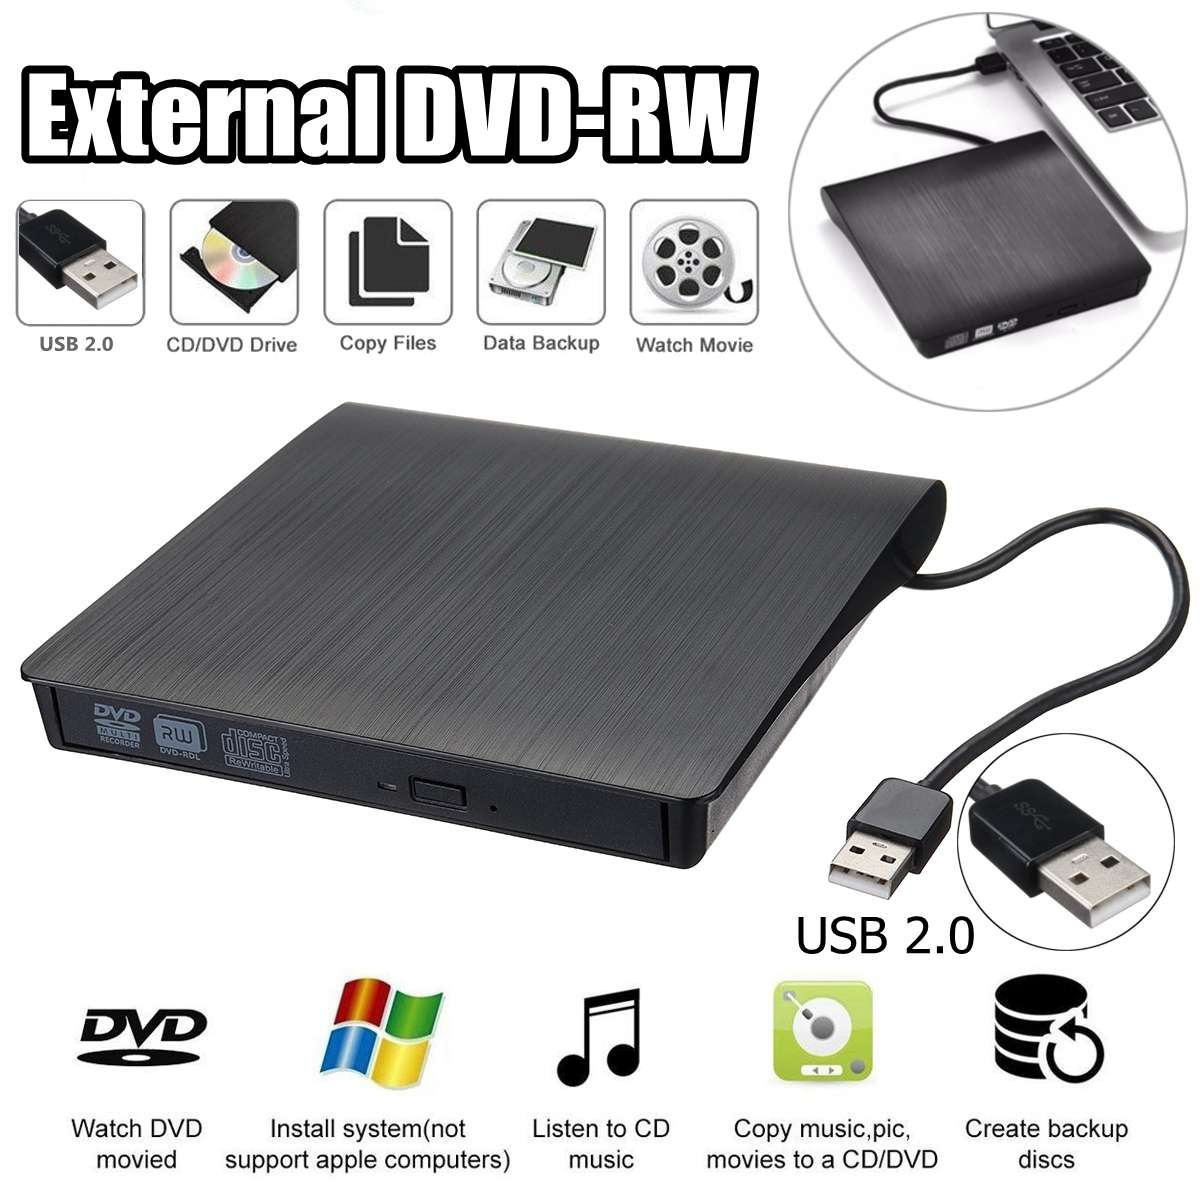 External DVD CD Reader Optical Drive USB 2.0 DVD-RW CD-RW Player Burner Slim Portable Reader Recorder Portatil For Laptop PC